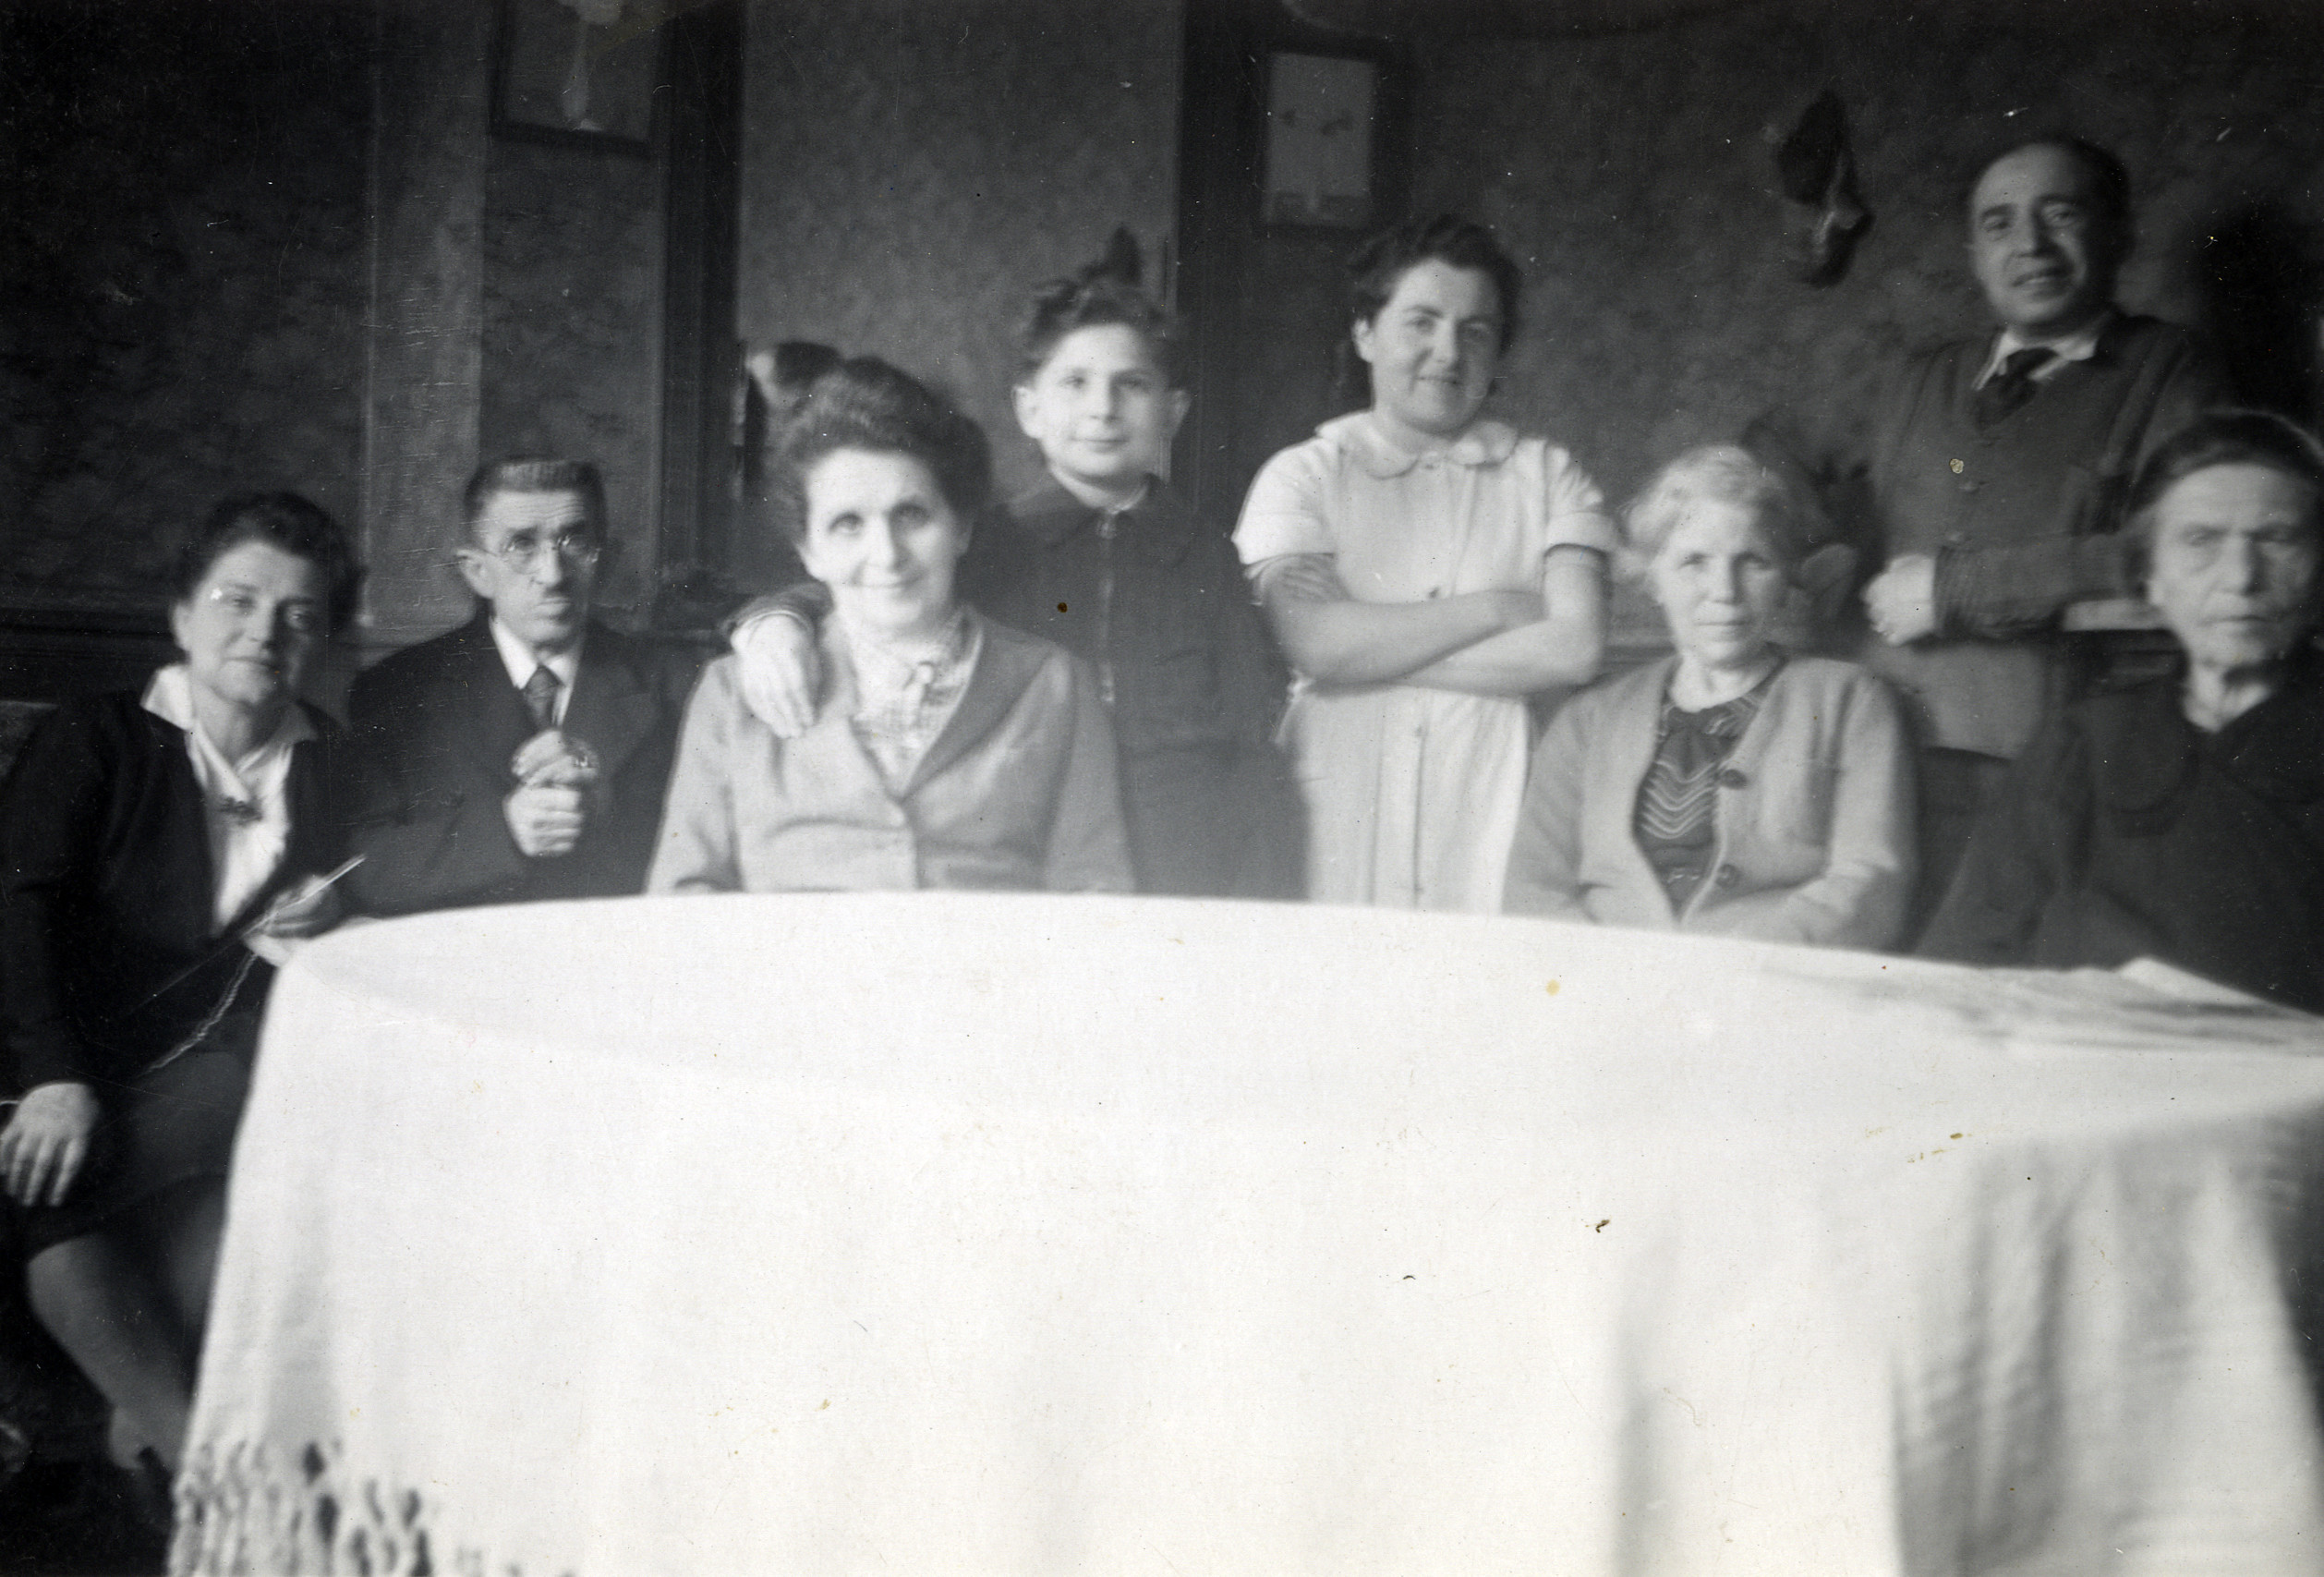 Wartime photograph of a French Jewish family.  Before the war, the Dores and Abramovitz families frequenlty socialized together on Sundays.  This photograph shows the last occasion when they were able to do so.  Three members of the family had already been deported to Auschwitz:  Marcel Tachnoff (father of Claude, pictured), Meyer Lipovetski (brother of Adolphe, pictured), and Dora Abramowitz (mother of Clara, pictured).  Pictured are (left to right):  Alice (sister to Clara) and her husband Adolphe Lipovitski, Anna Tachnoff (sister to Clara) and her son Claude, Clara, Celine Lipvitski (aunt?), Symchel Dores,and his mother Zizla Dores.